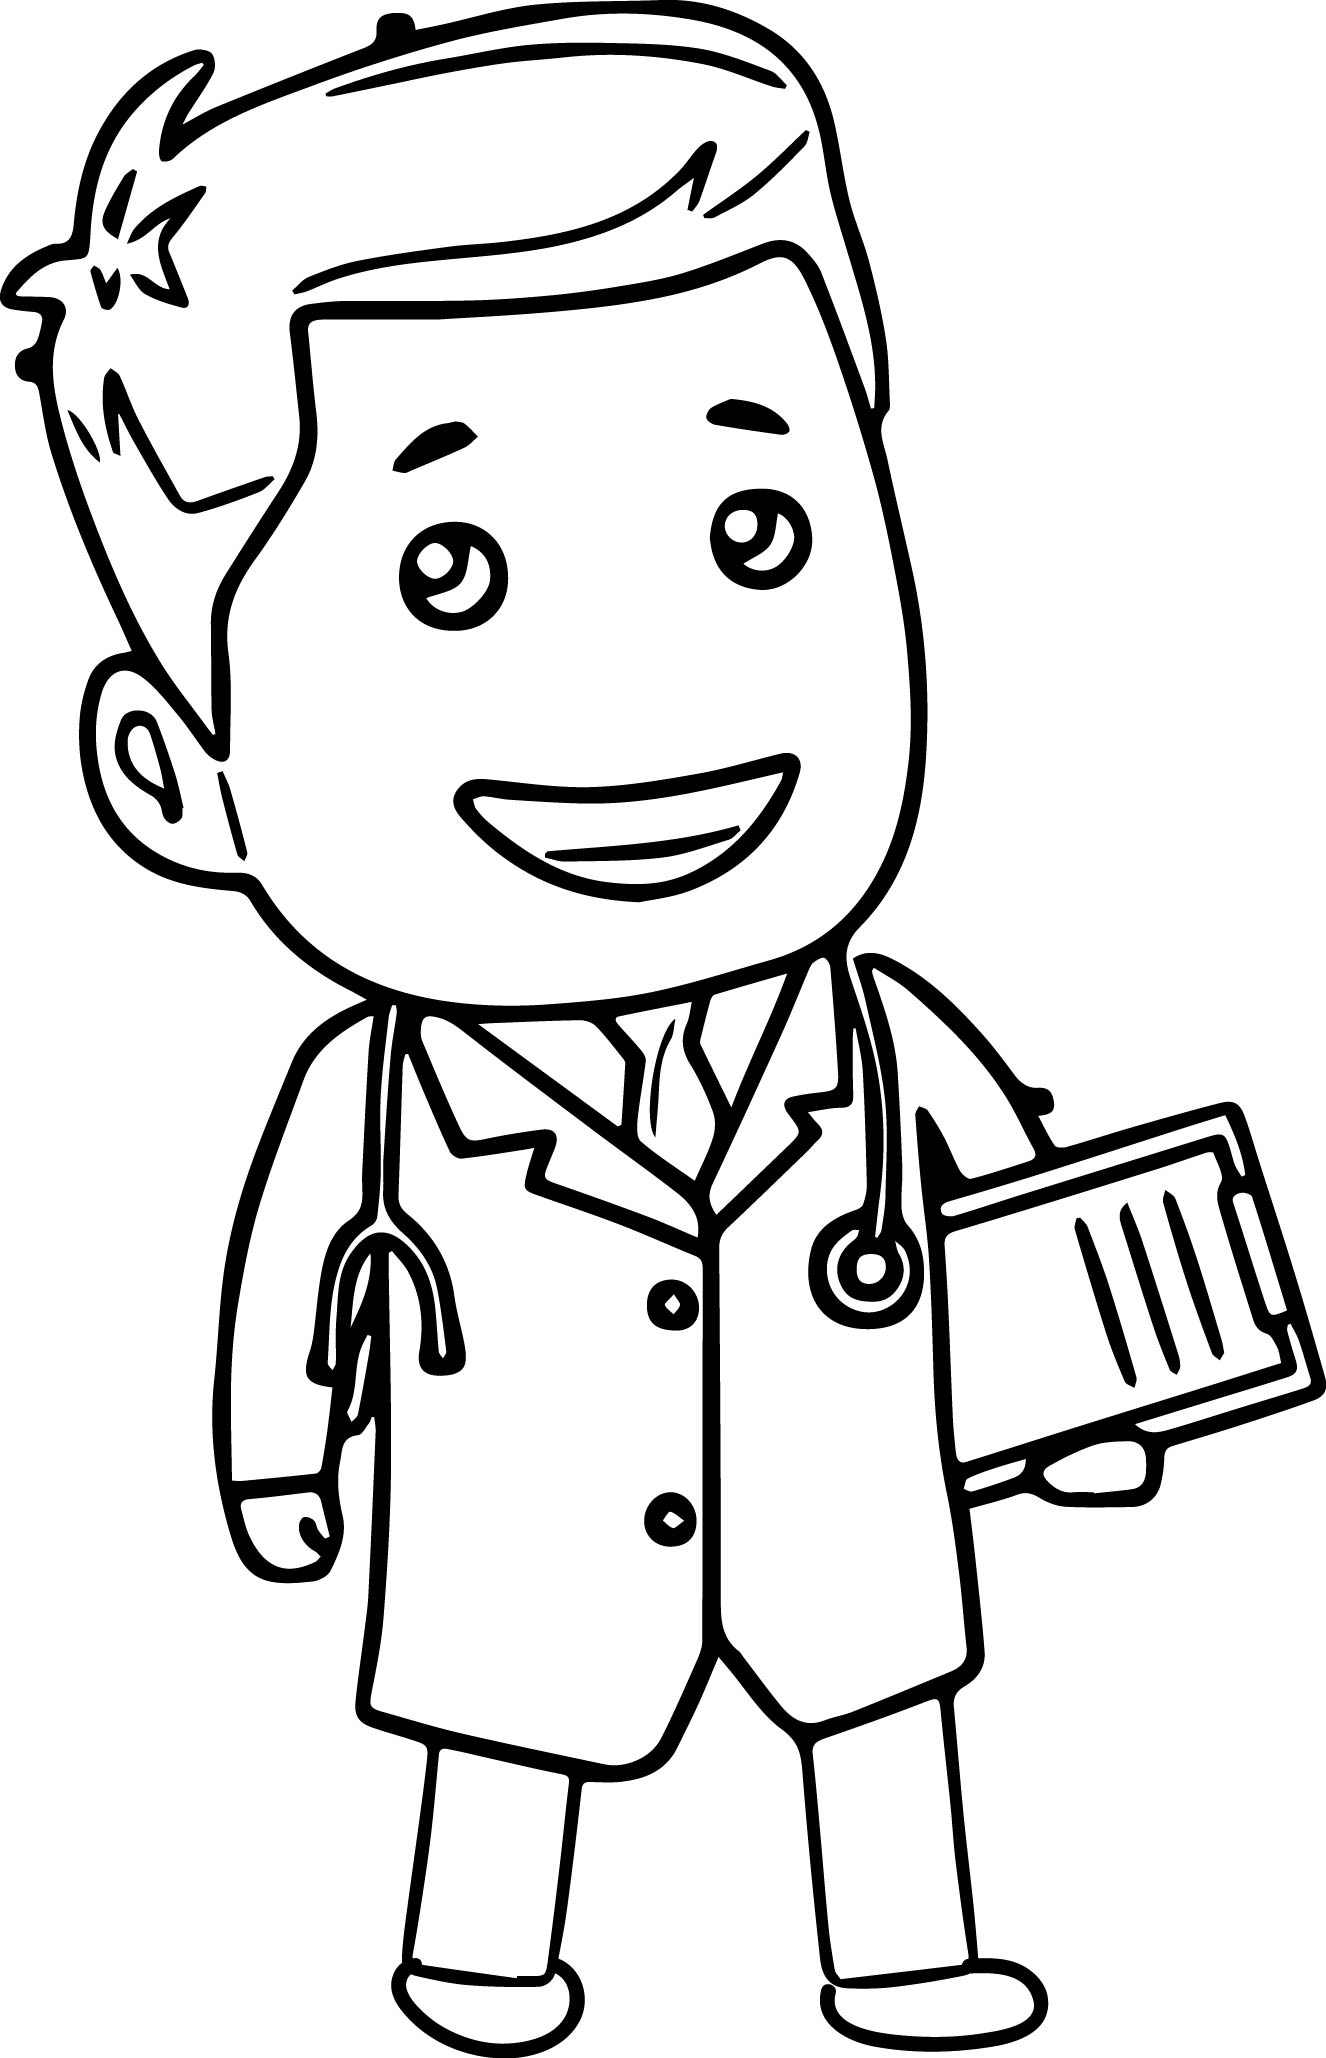 Doctor clipart cartoon. Who drawings black and